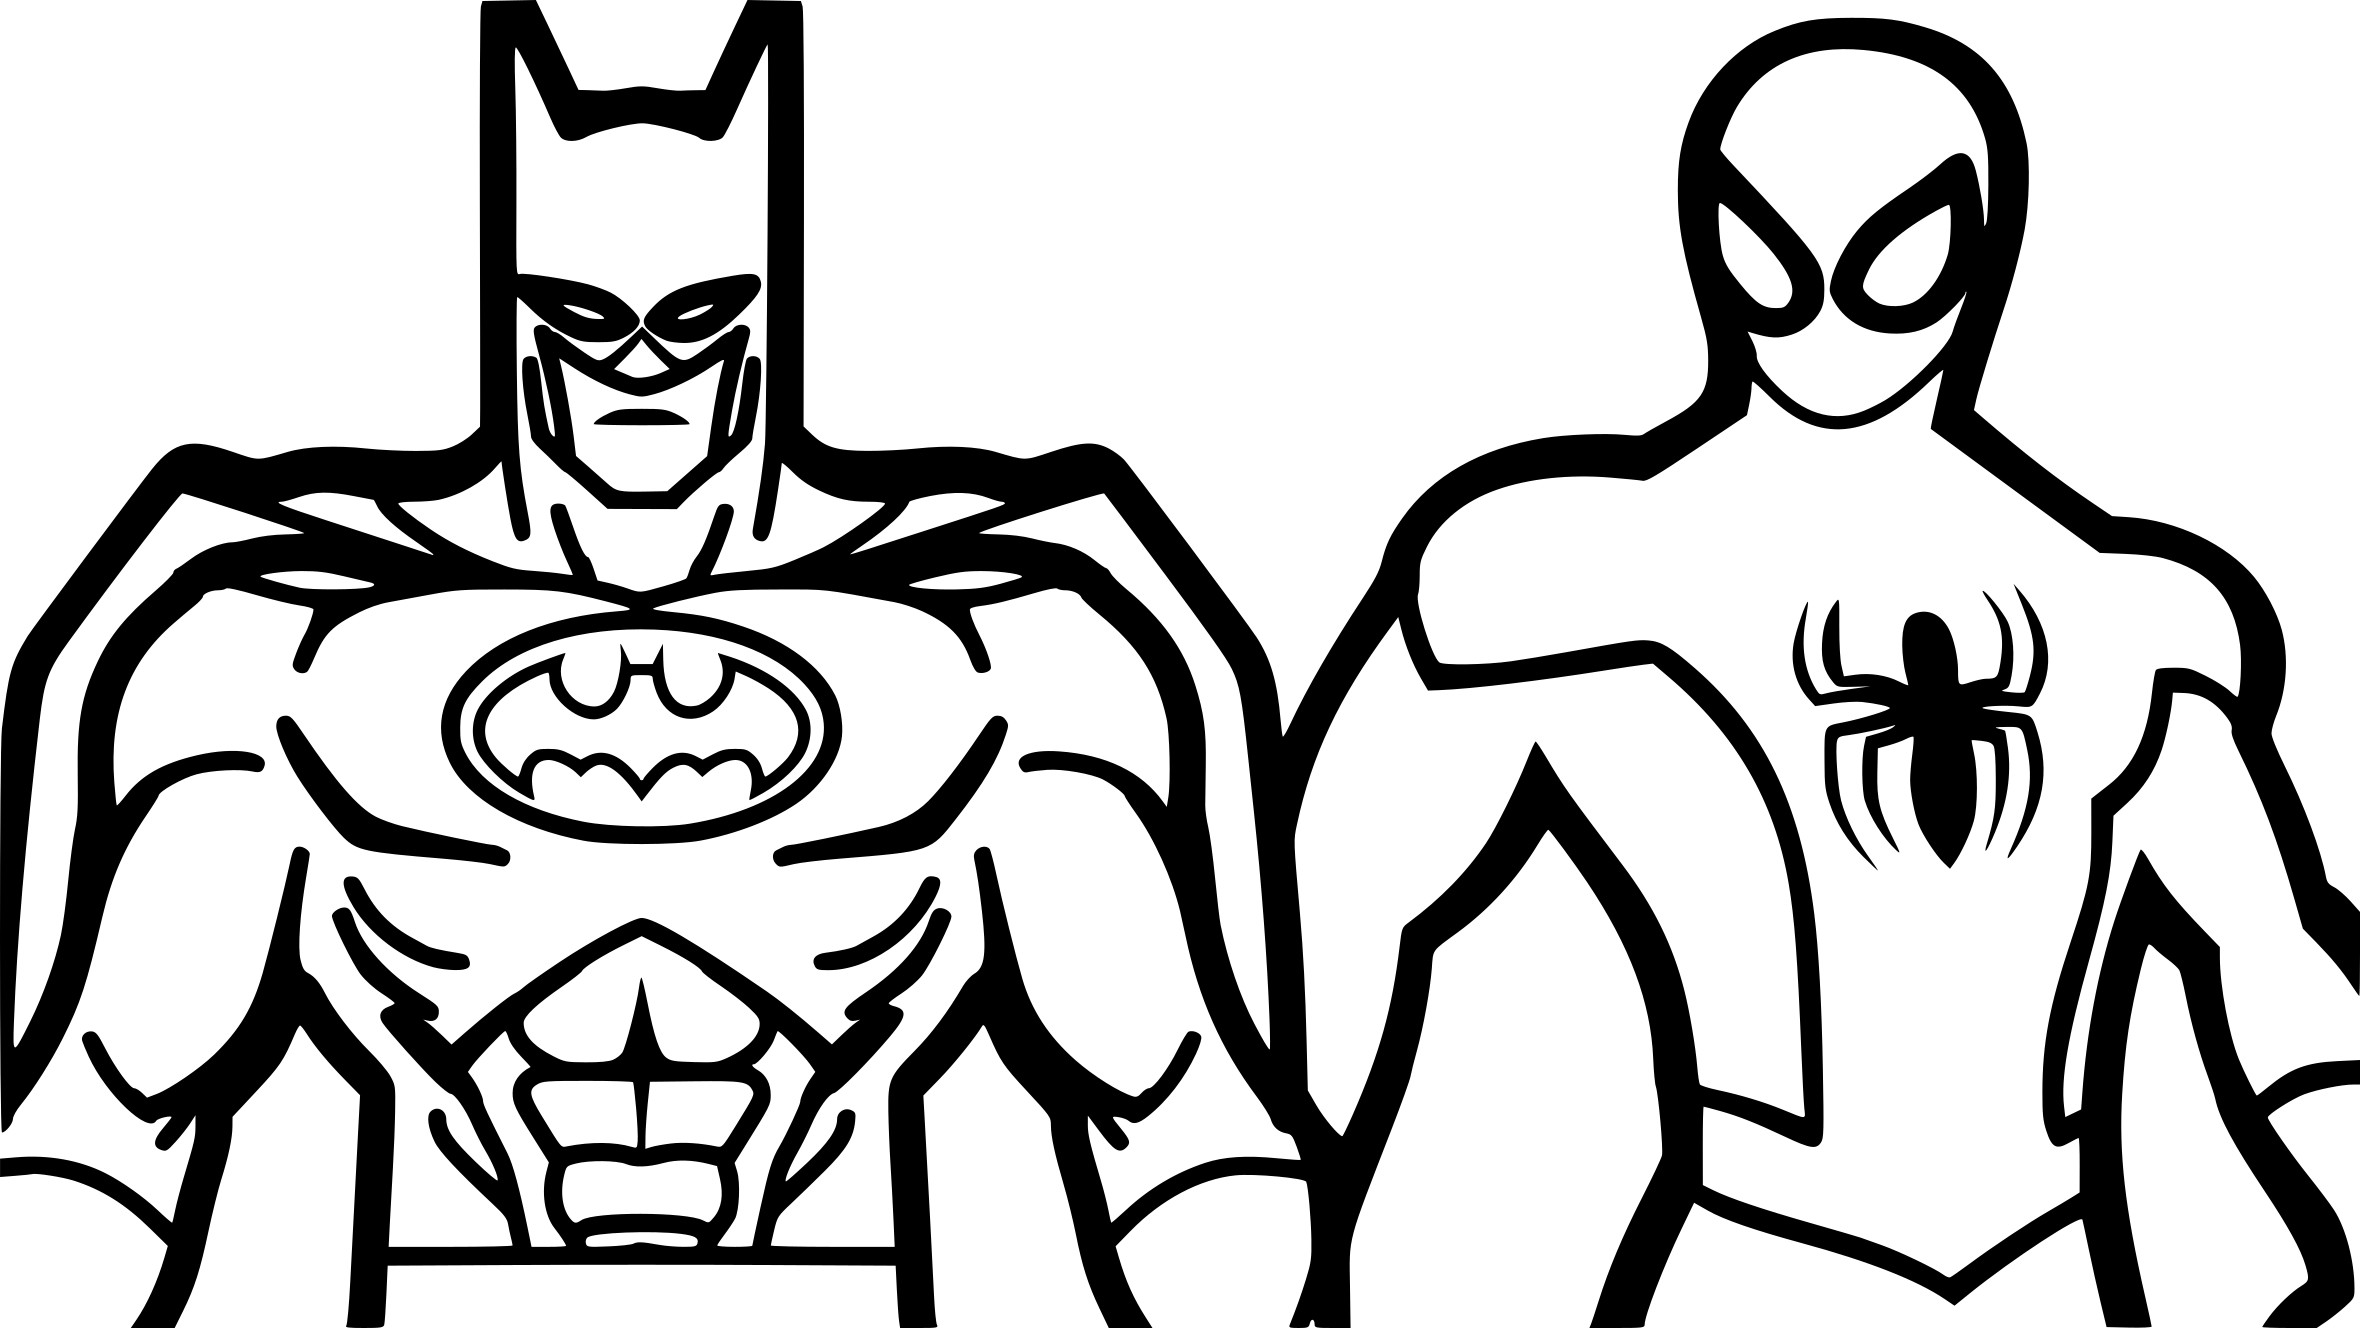 Coloriage spiderman et batman imprimer sur coloriages info - Dessin spiderman facile ...